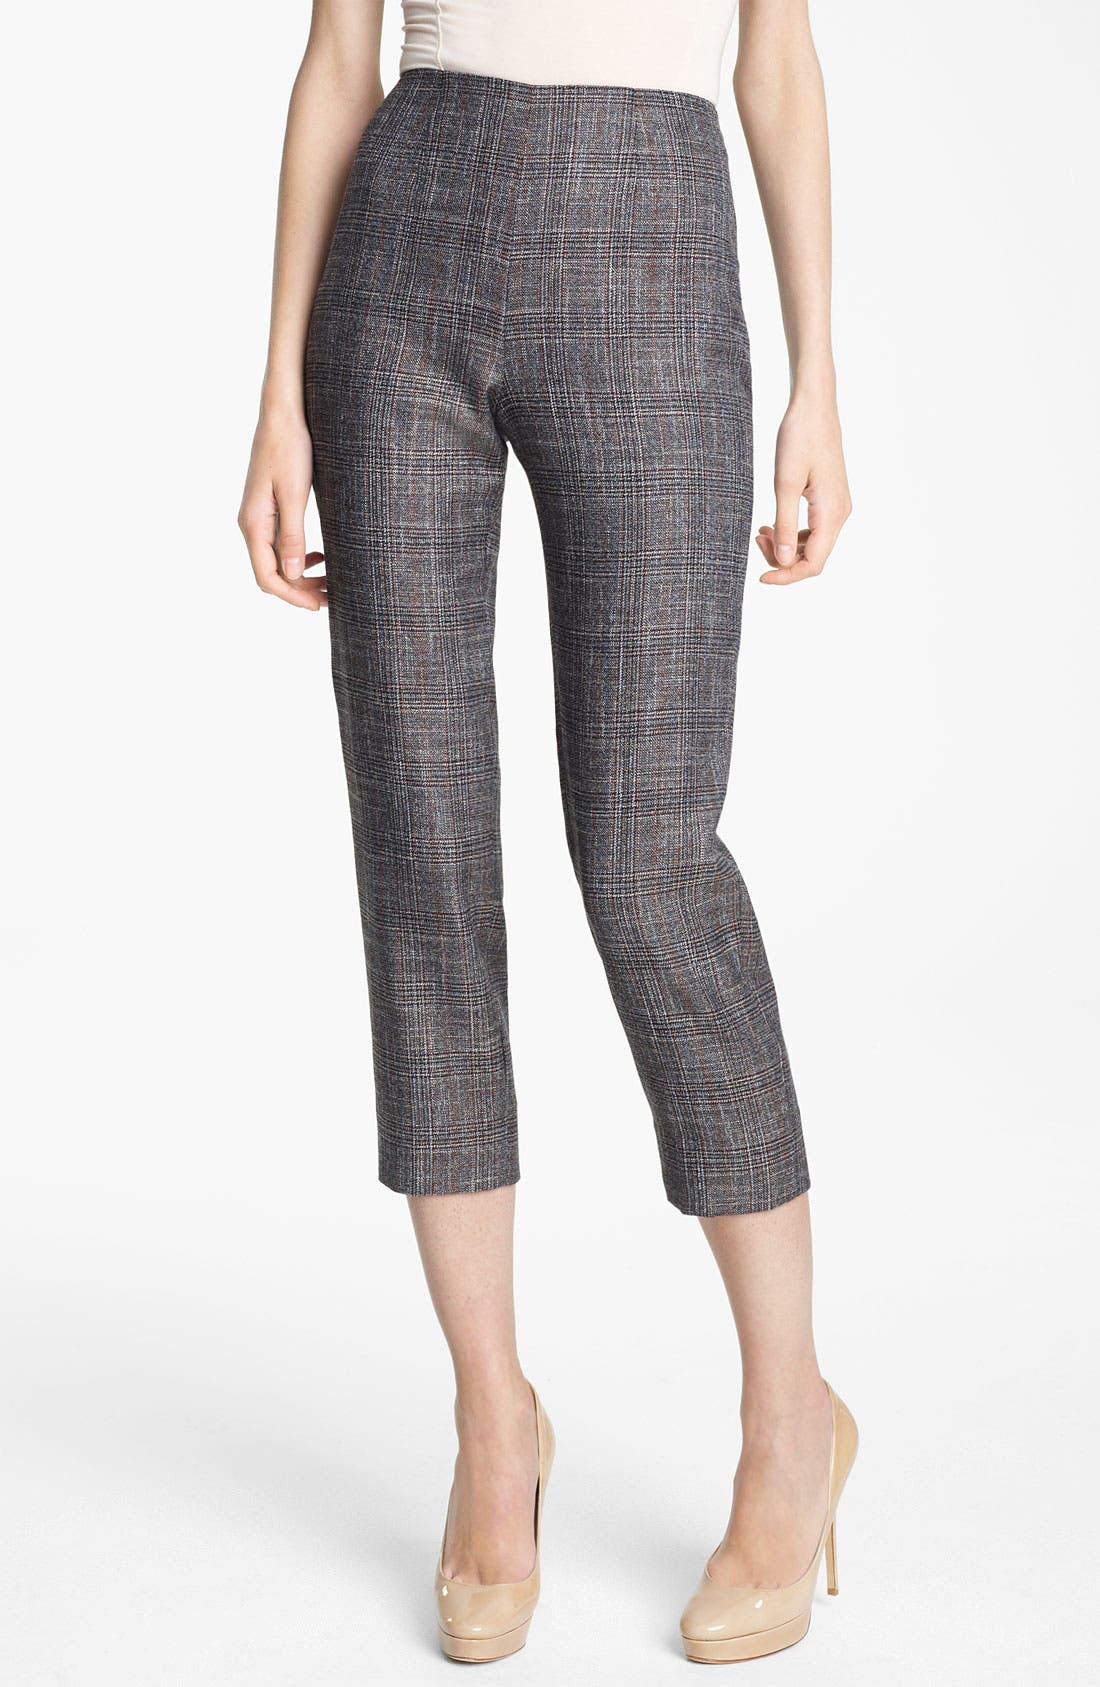 Alternate Image 1 Selected - Piazza Sempione 'Audrey' Madras Crop Pants